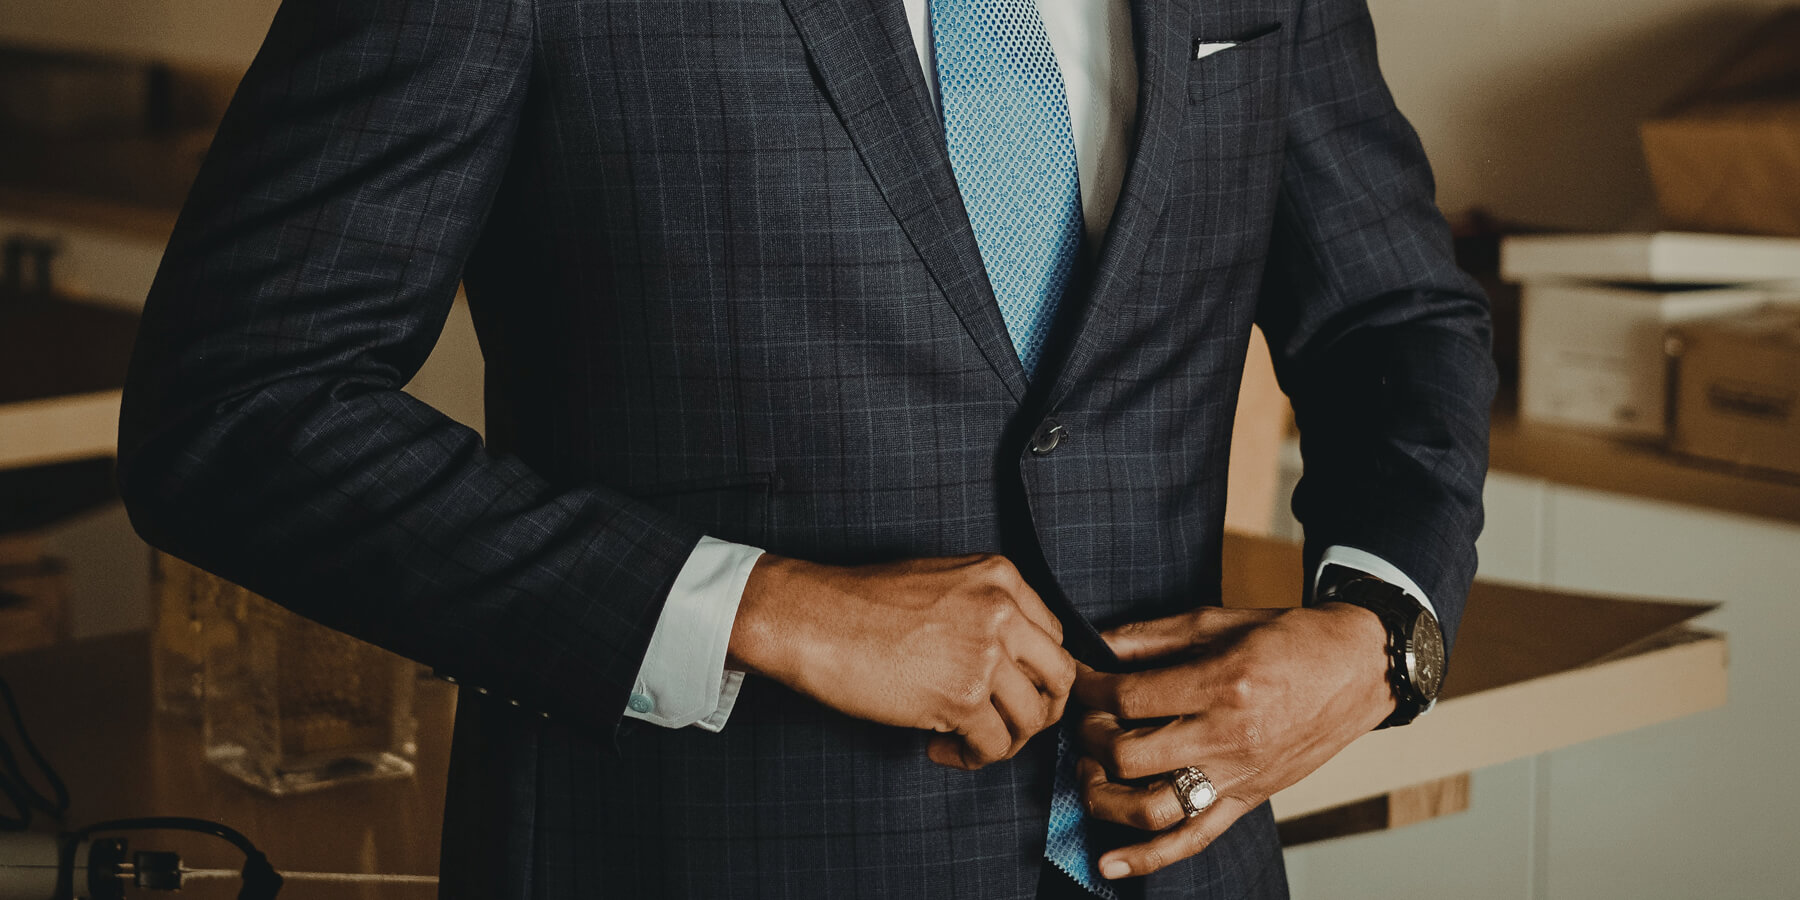 3 Reasons Why You Should Get Your Next Suit Made by a Tailor - What to Know